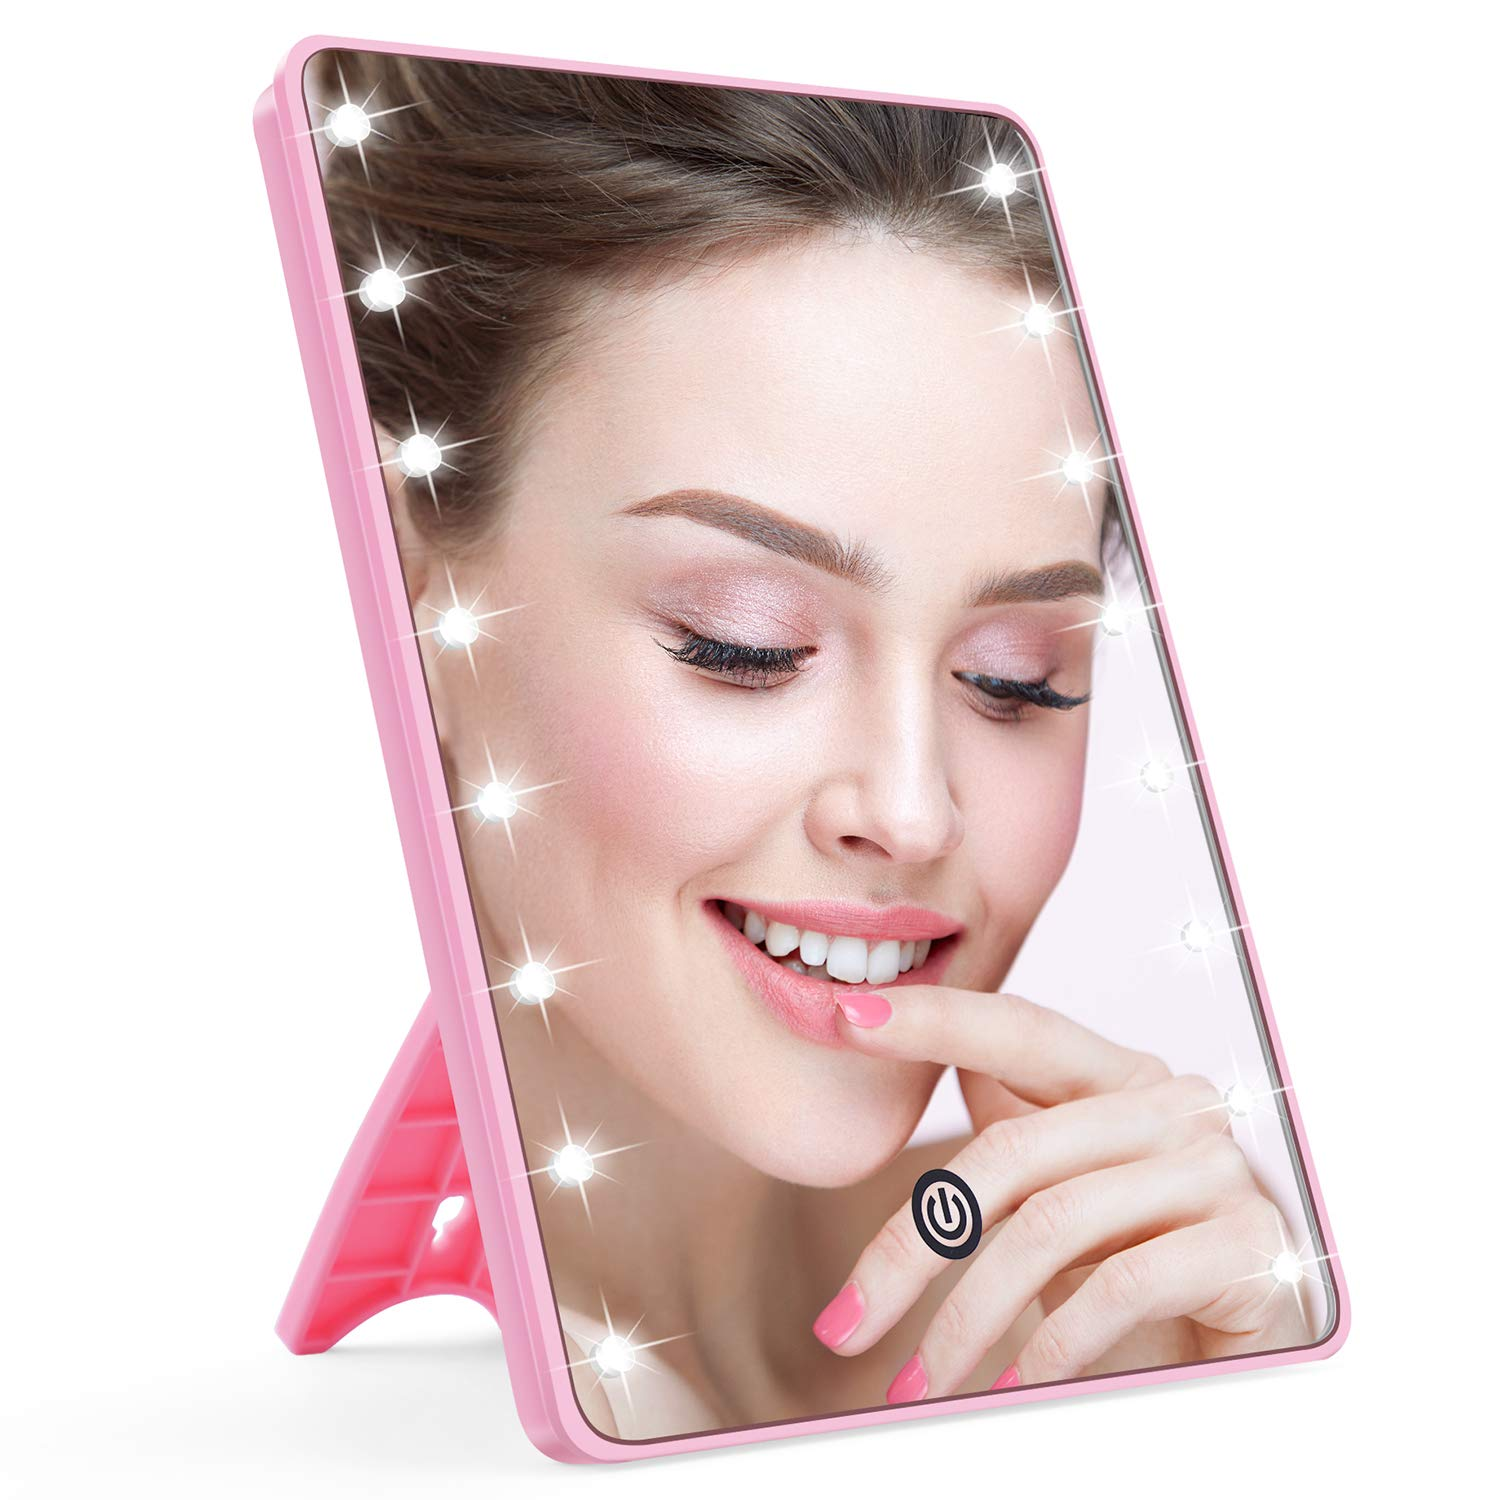 Makeup Mirror for Women and Men, Lighted Makeup Vanity Mirror with 16 LED Lights,Touch Screen,Light Adjustable Dimmable Light up Mirrors for Home Tabletop Bathroom Shower Travel